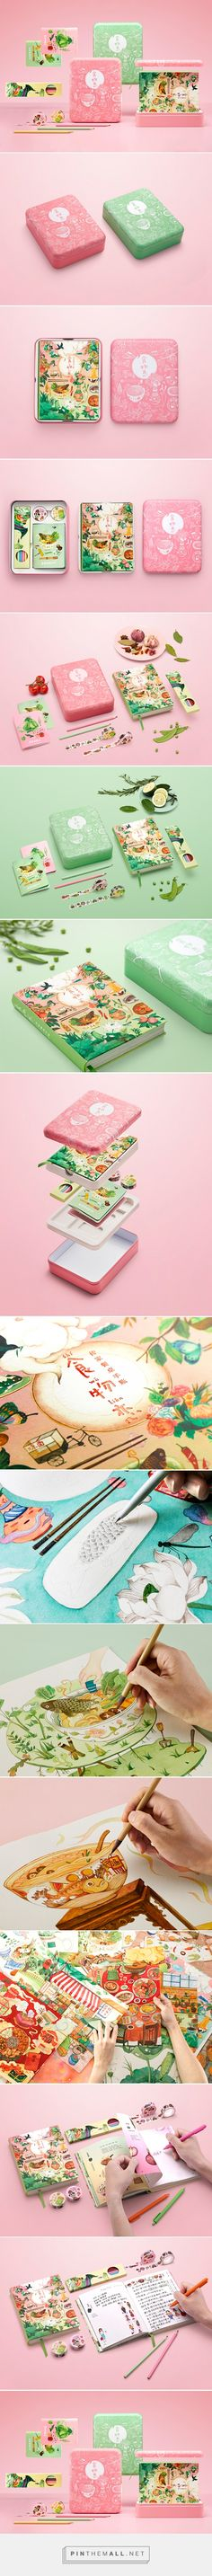 Love for Food Gift Box packaging design by Shenzhen Pure Creative - http://www.packagingoftheworld.com/2017/05/love-for-food-gift-box.html